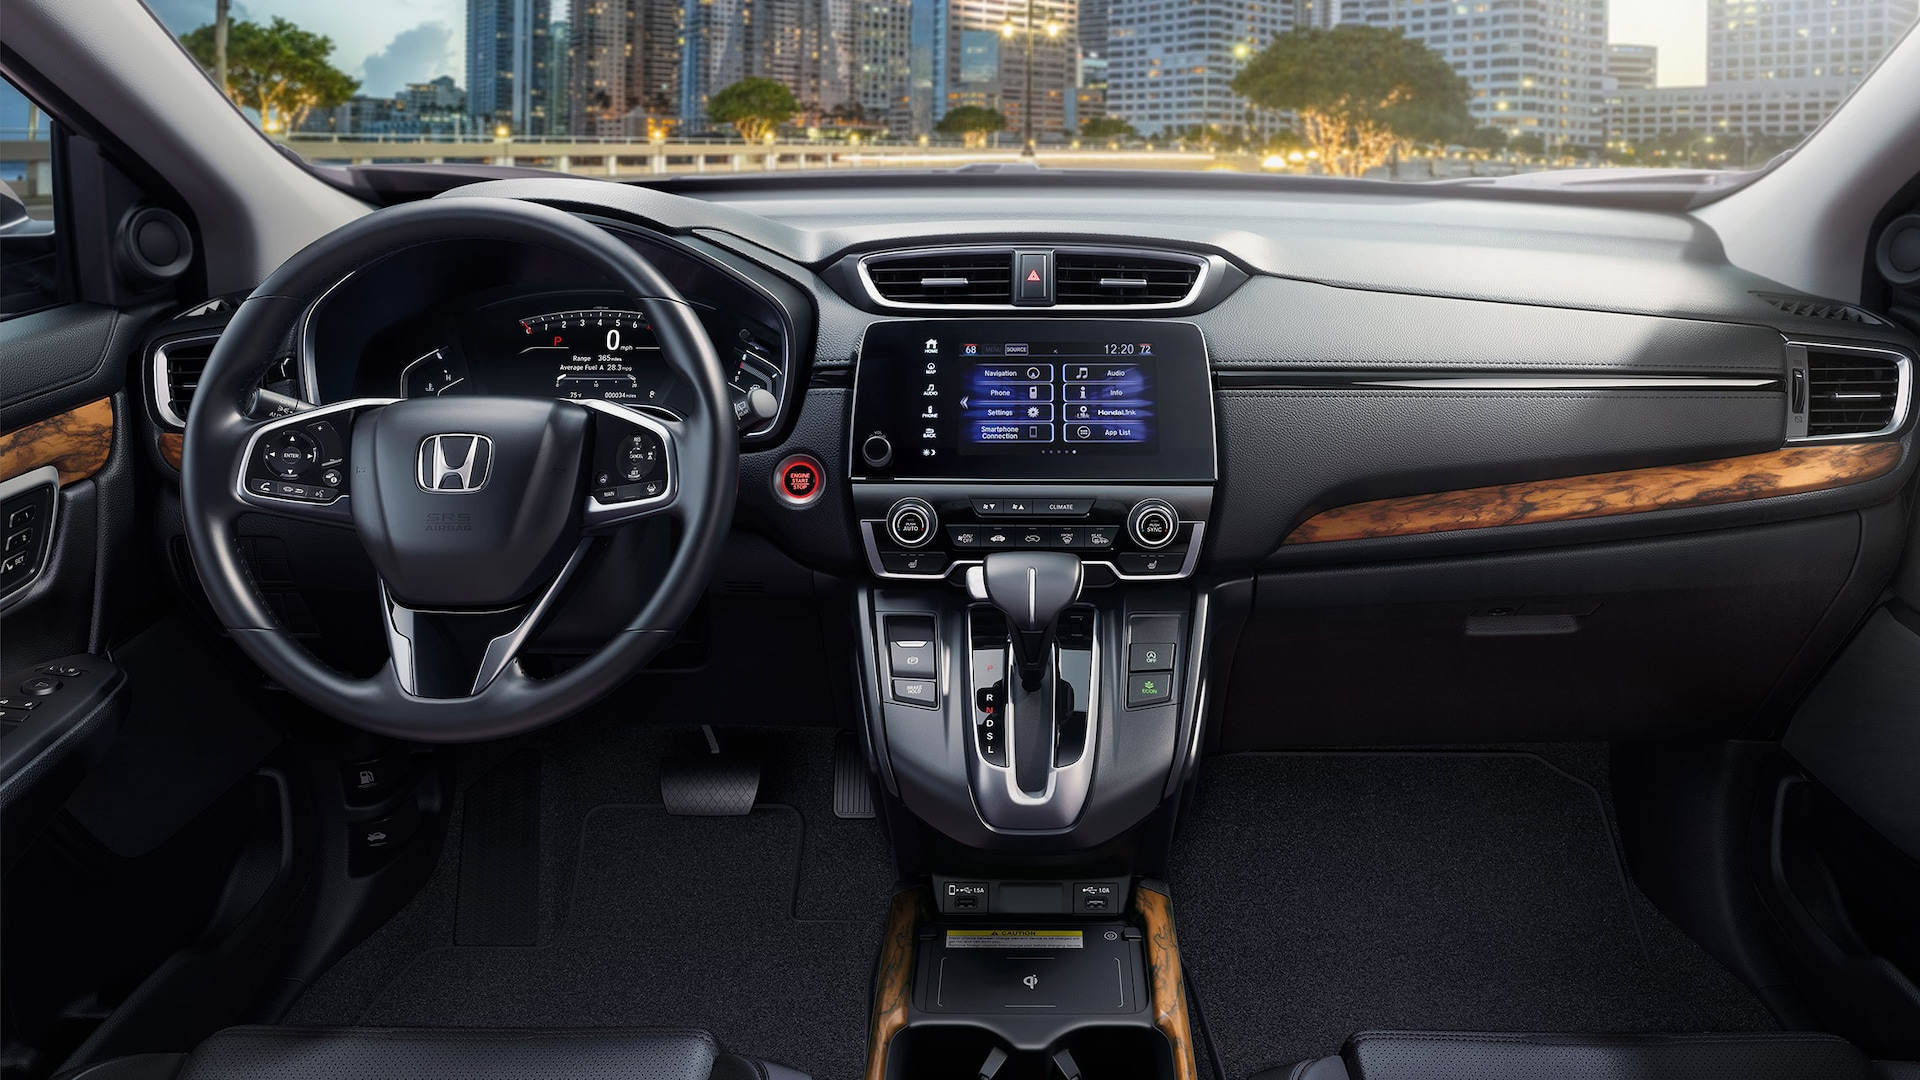 Interior view of instrument panel in the 2020 Honda CR-V.